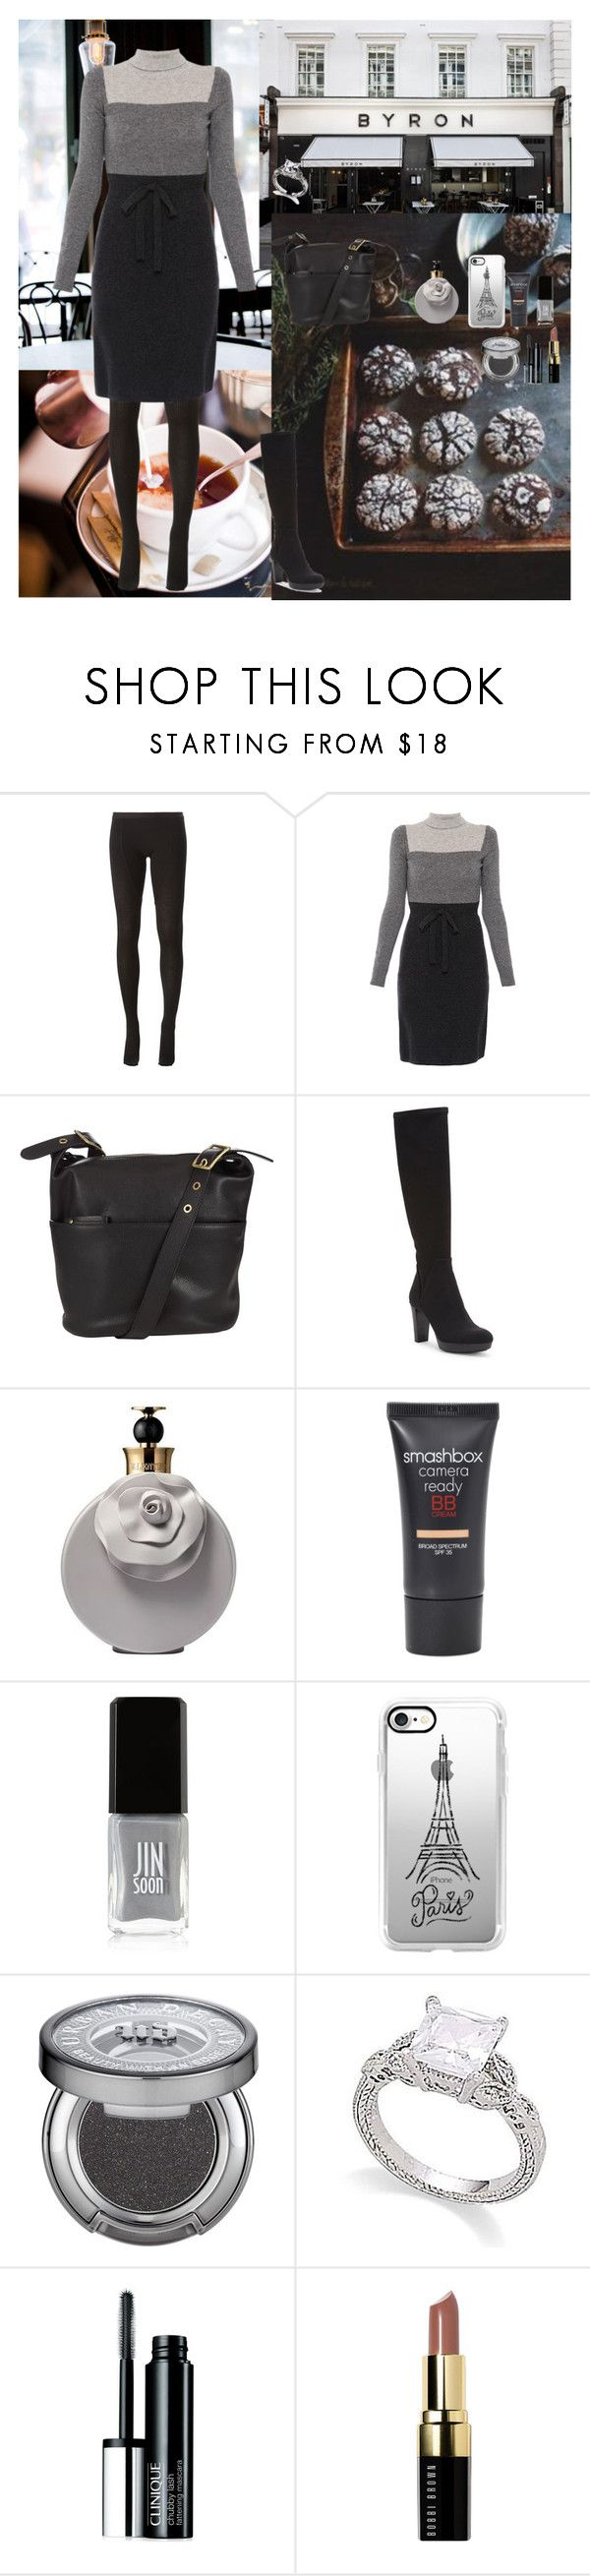 """Go to Cafe 🍪"" by oksana-kolesnyk ❤ liked on Polyvore featuring BYRON, Rick Owens, Paule Ka, John Lewis, Donald J Pliner, Valentino, Smashbox, JINsoon, Casetify and Urban Decay"